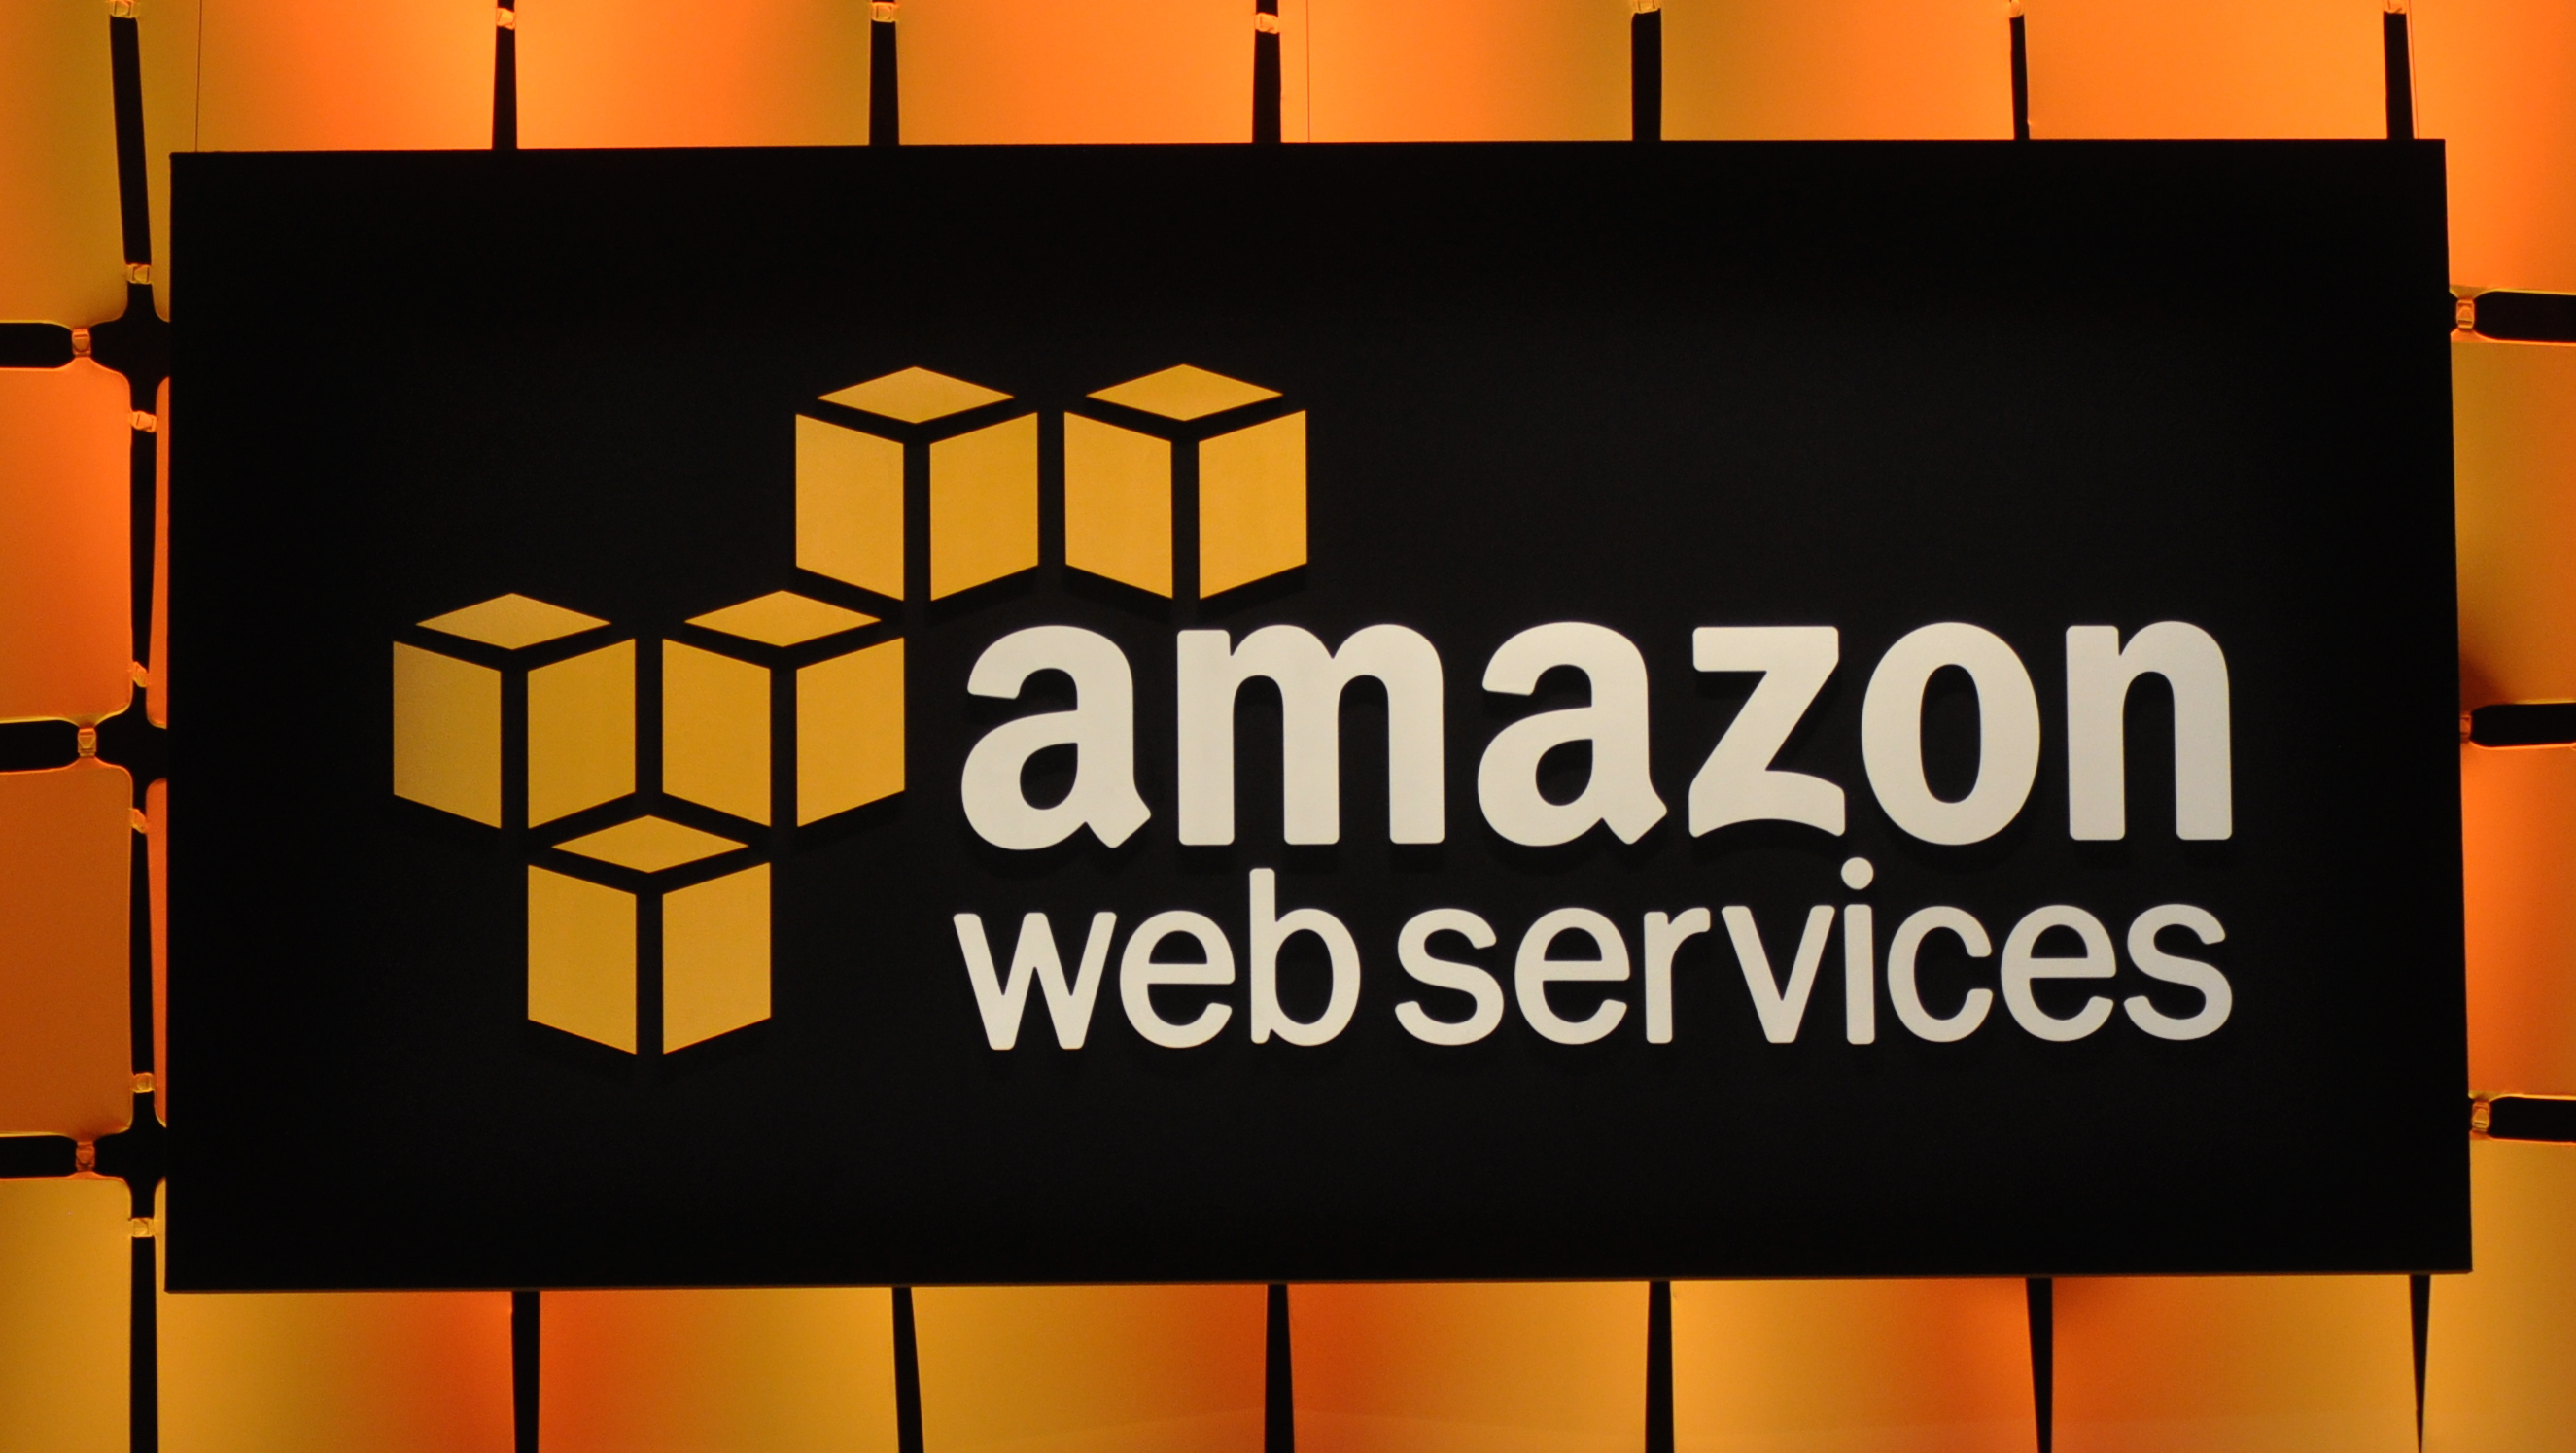 analyst warns apple may ditch amazon web services taking